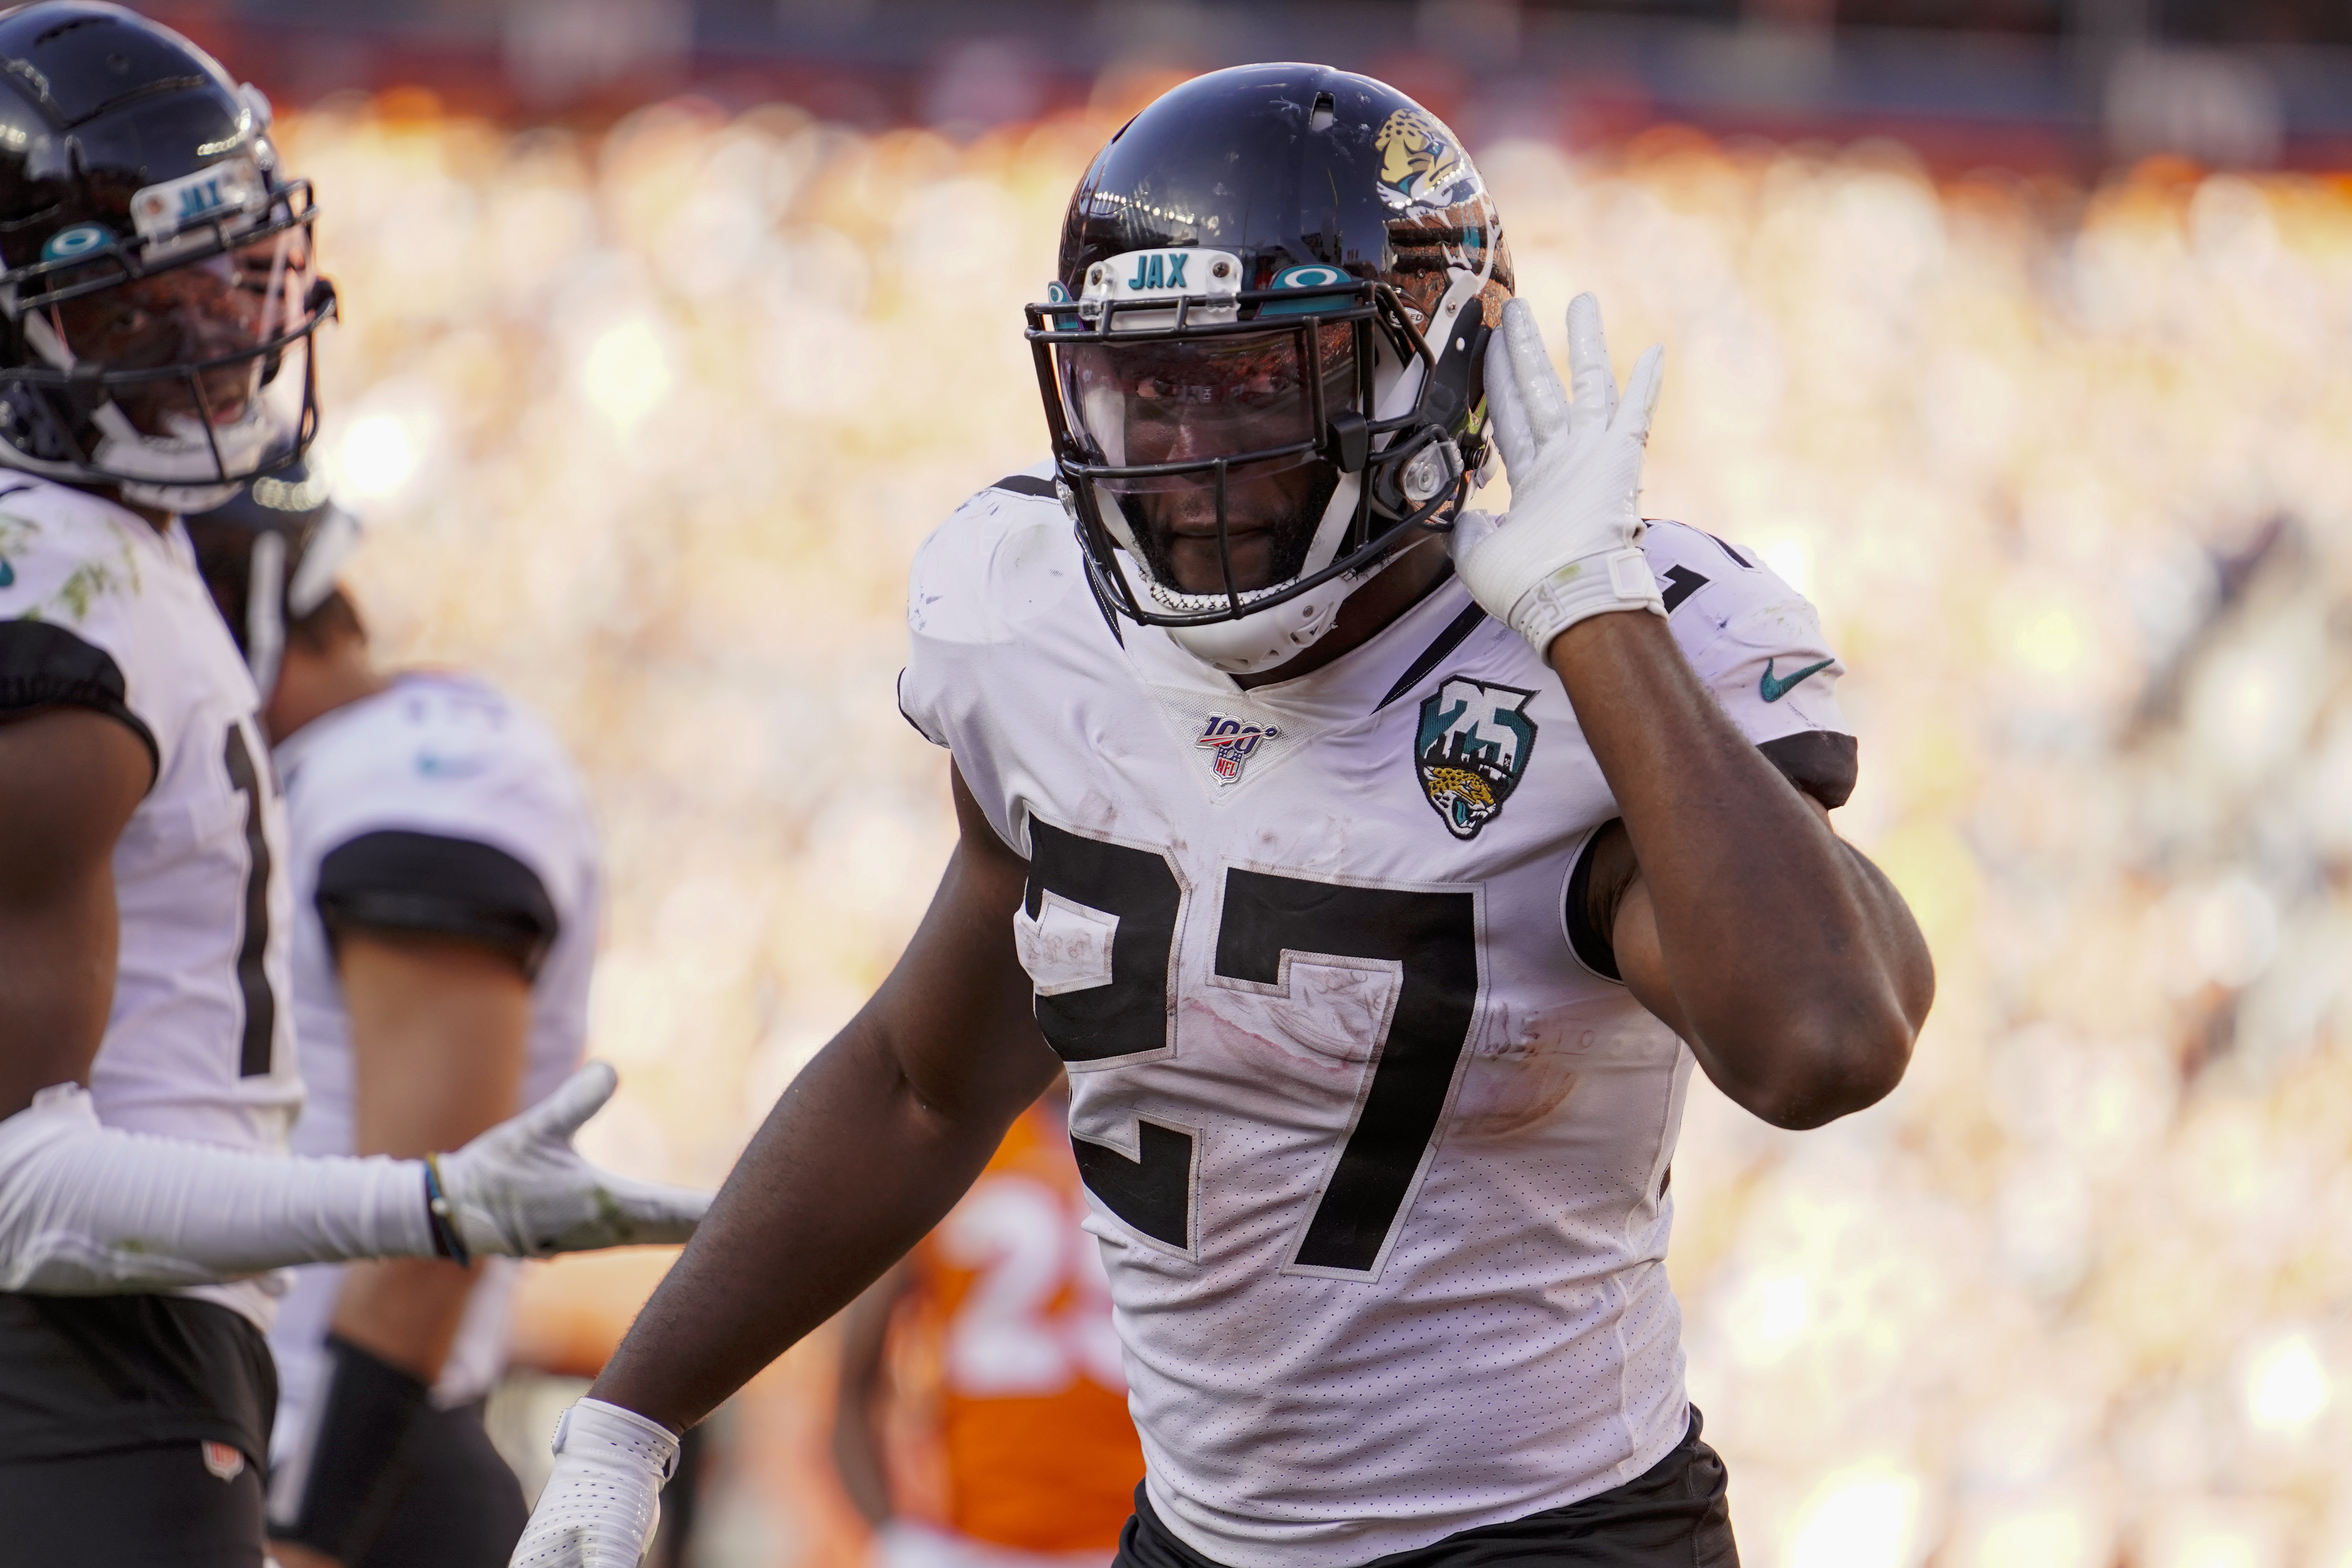 Fournette leads Jags' 26-24 comeback over Broncos